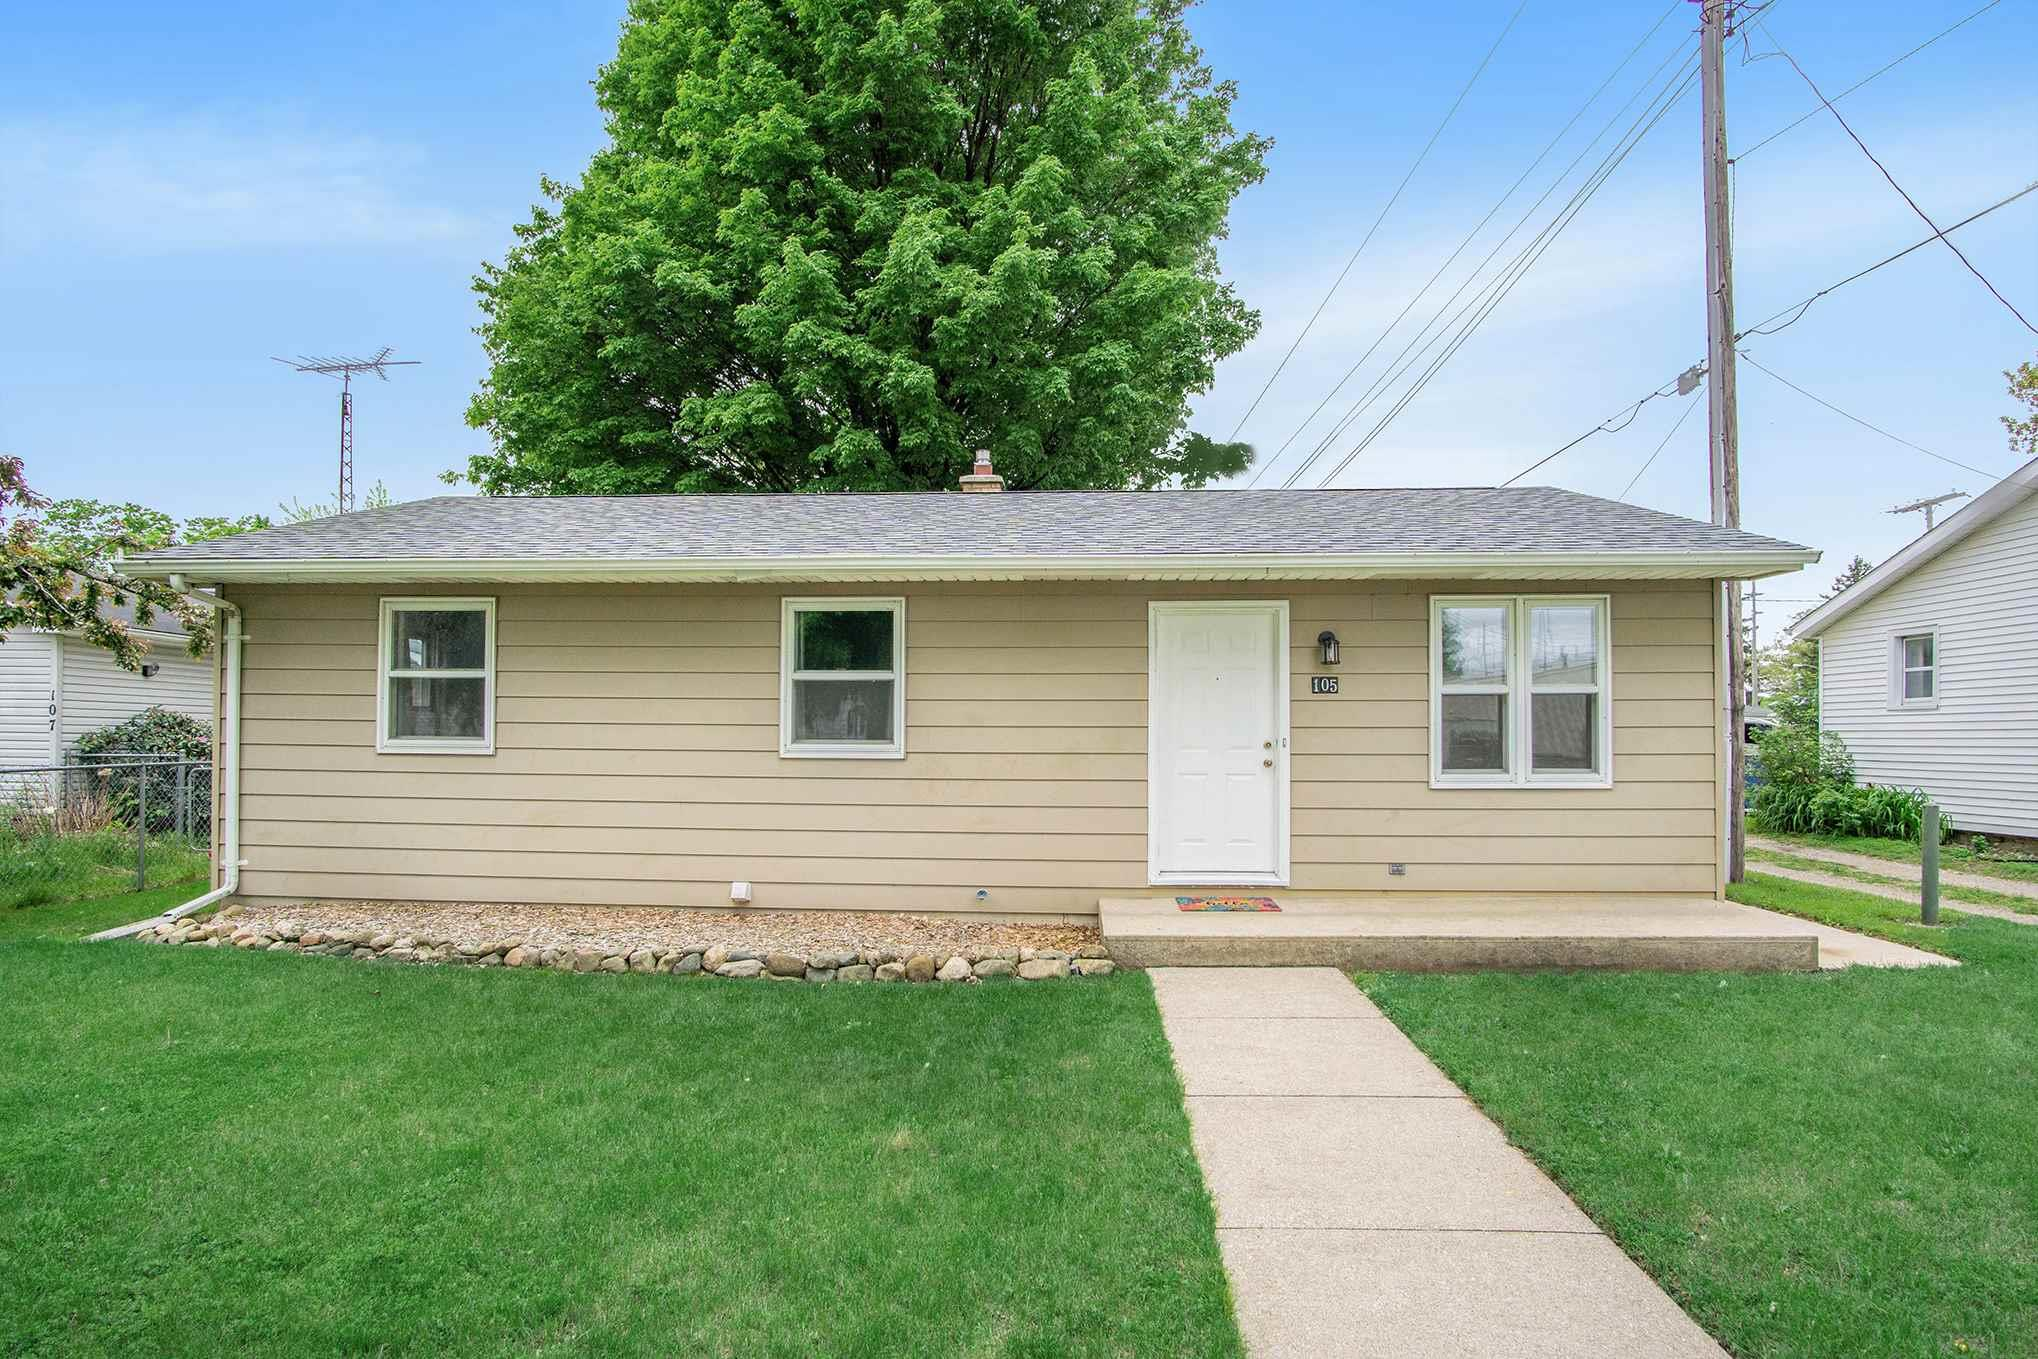 105 S Maple North Liberty, IN 46554